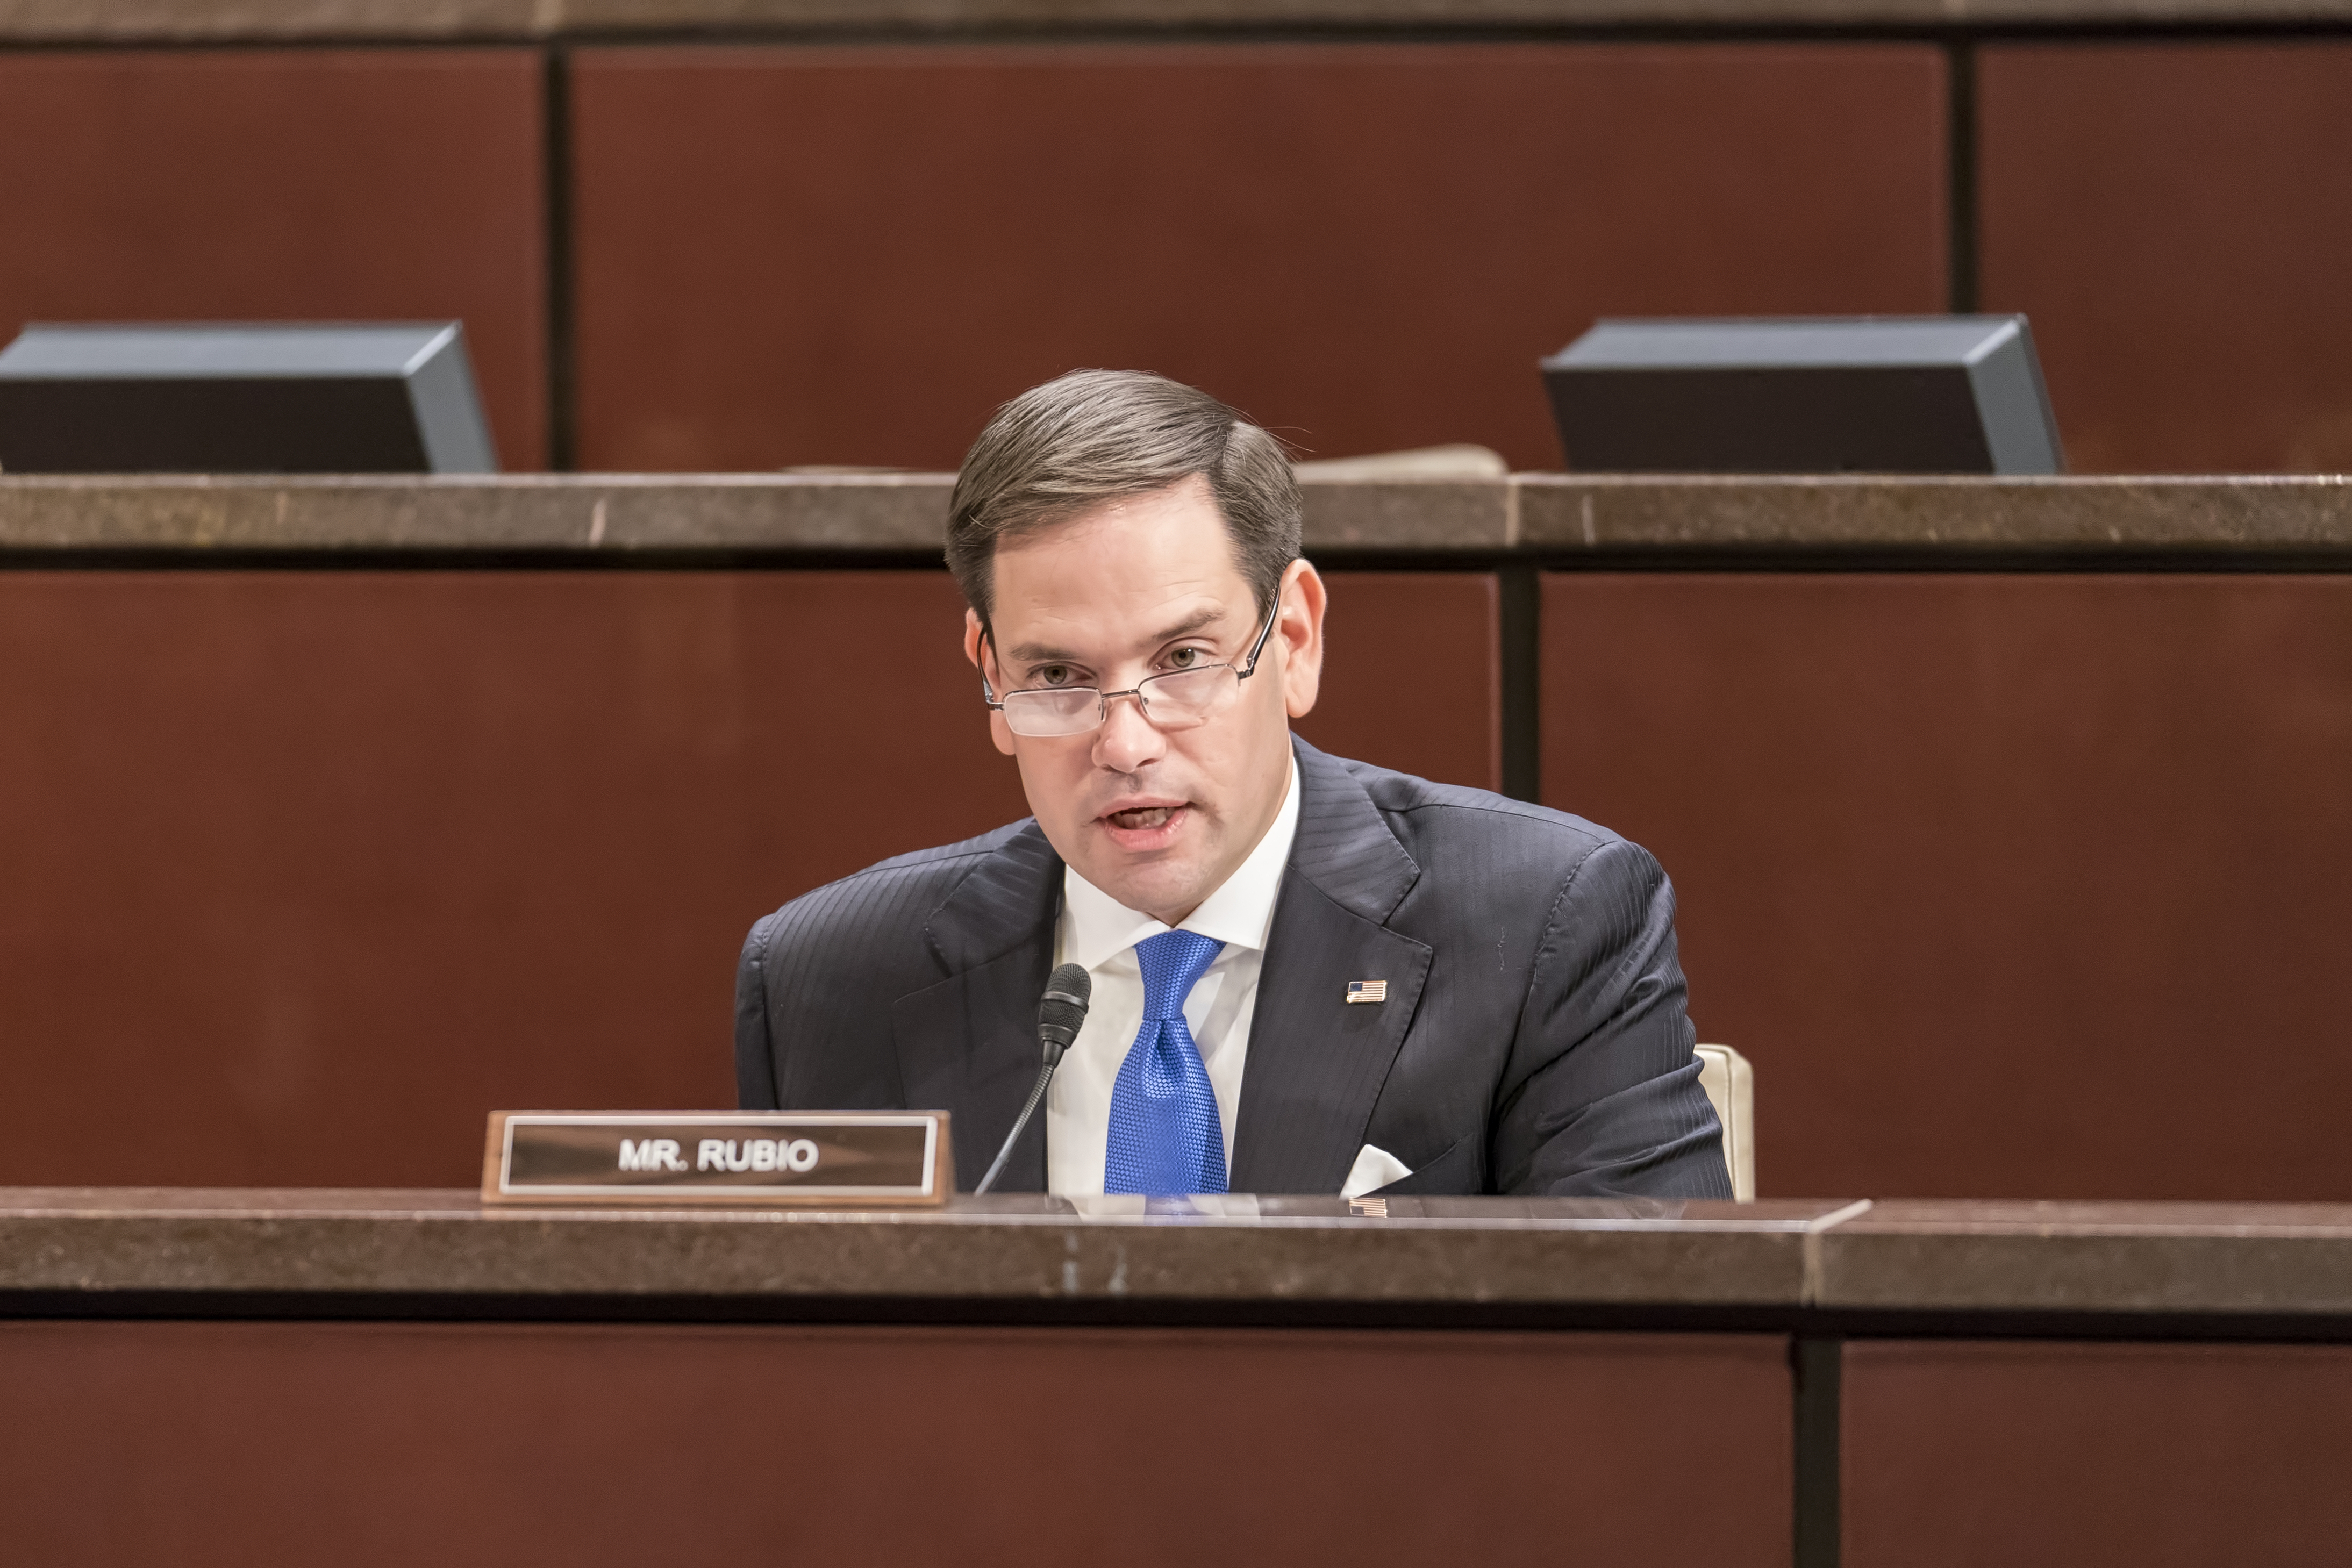 Senator Marco Rubio, the co-chairman of the Congressional-Executive Commission on China (CECC) speaks on Wednesday's hearing on China's human rights. (Leo Shi/The Epoch Times)